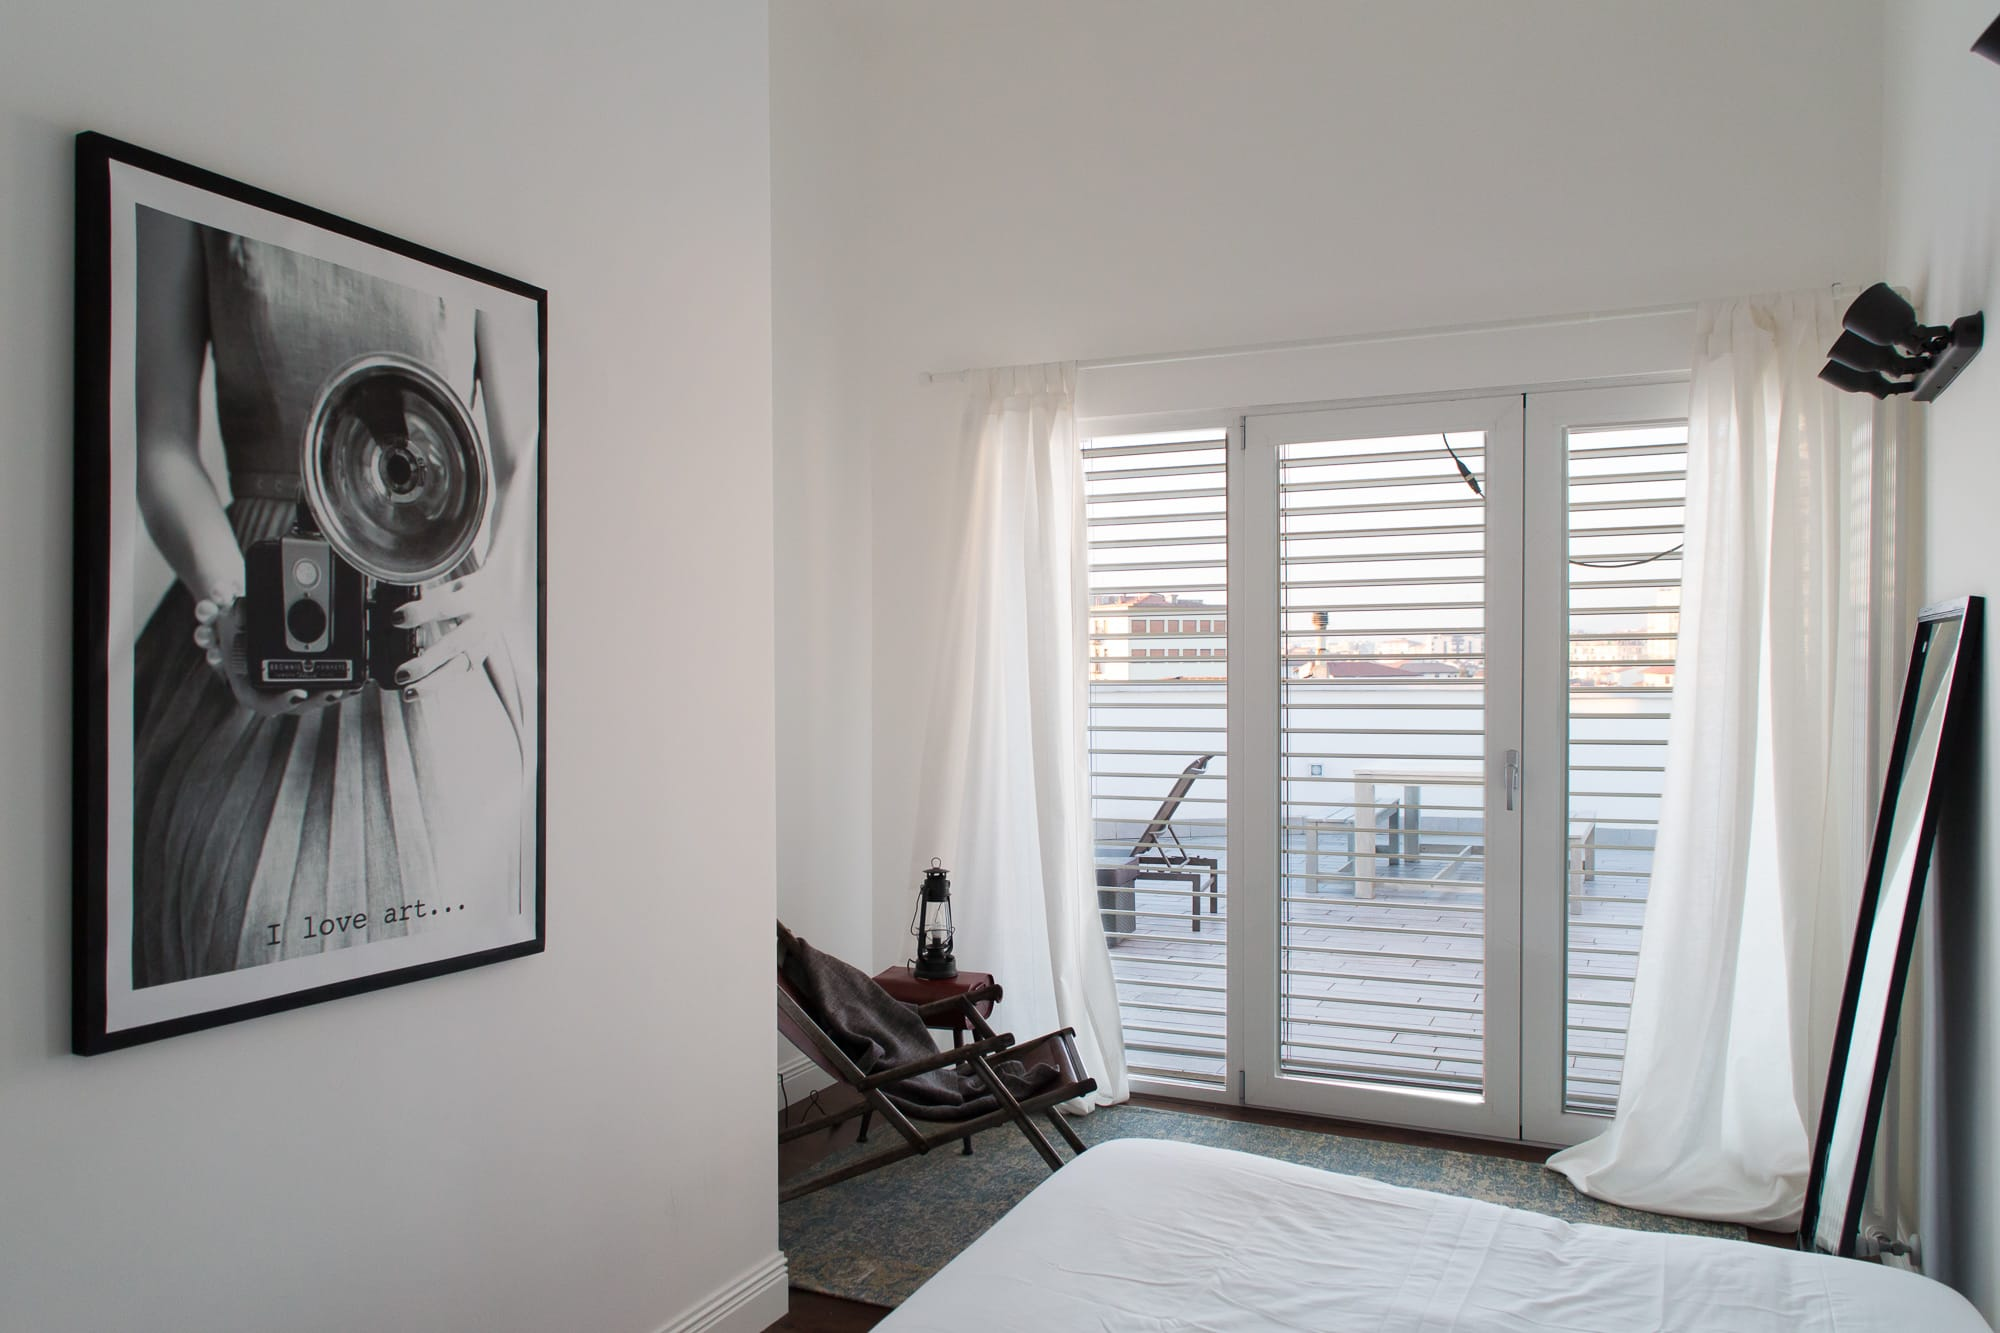 Vintage black and white painting in a white bedroom with wide window and leather lounge chair.